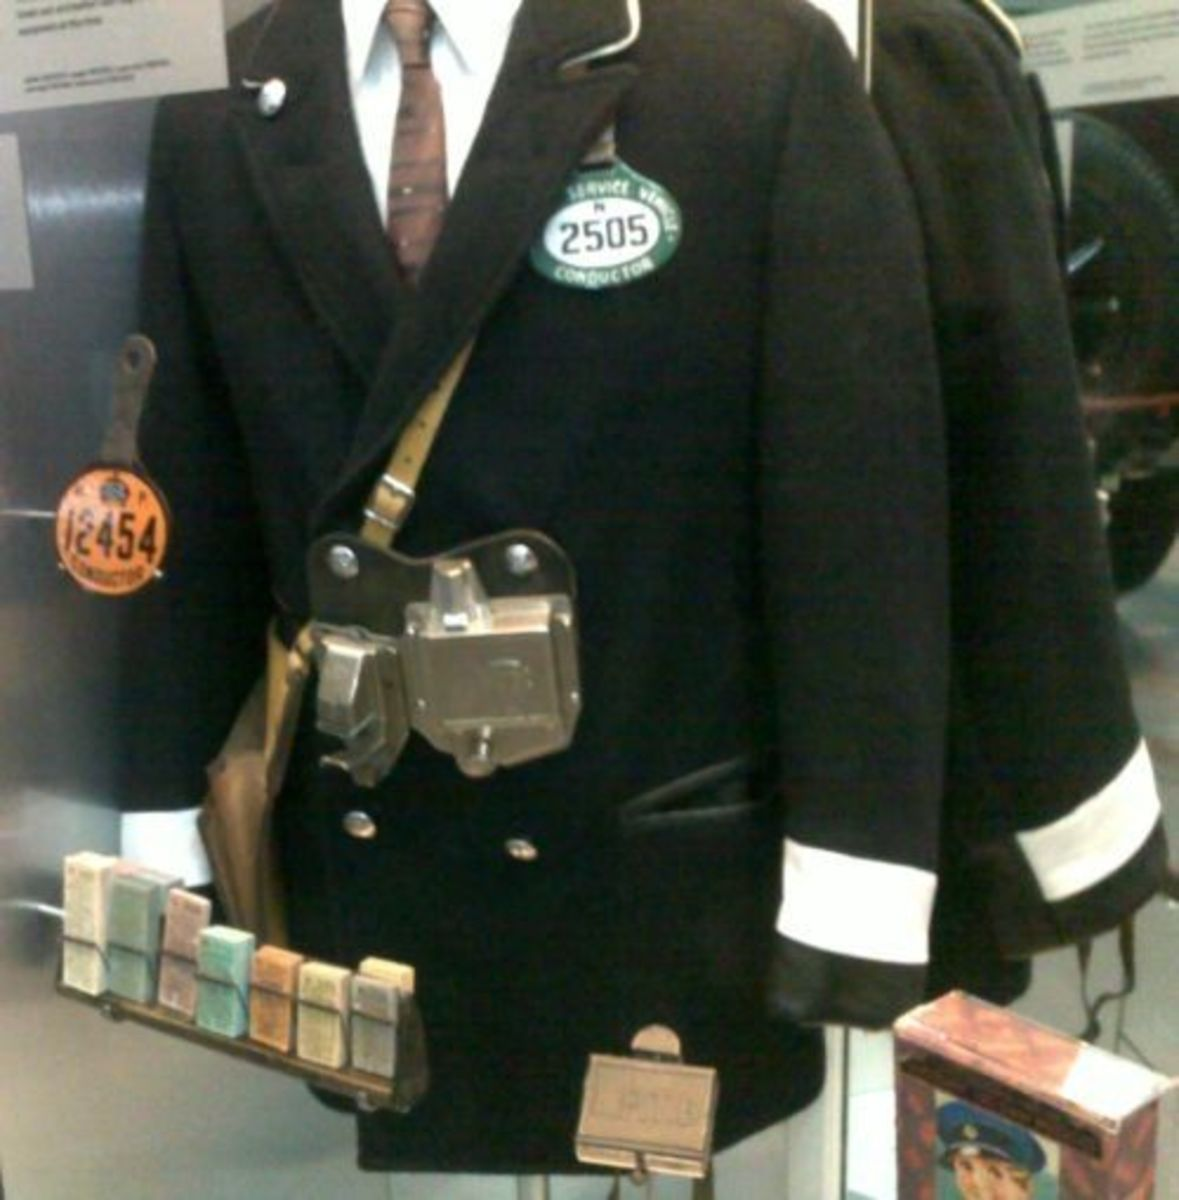 Bus Conductor Uniform with Ticket Machine and Range of Colored Tickets